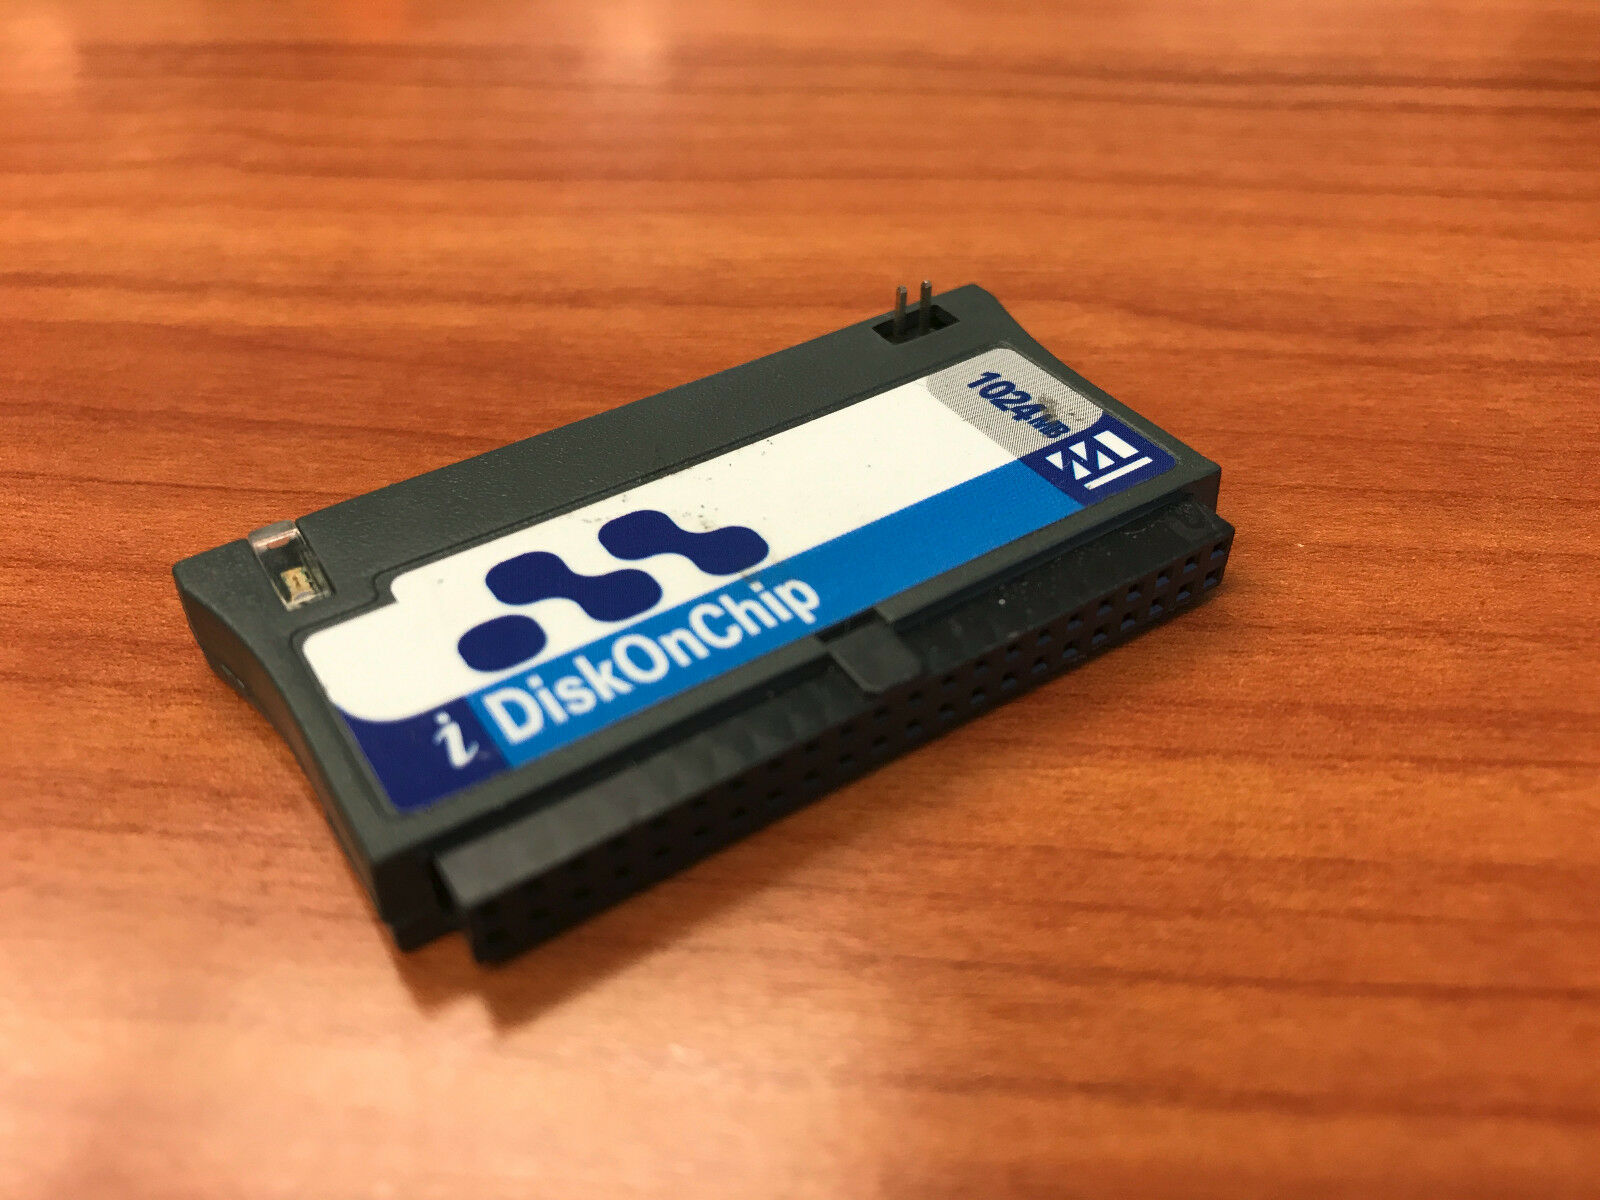 M Systems 1024mb I Diskonchip 44 Pin Ide Flash Disk Memory Md1151 Flasdisk Sandisk 8gb 8 Gb Original 1 Of 2free Shipping